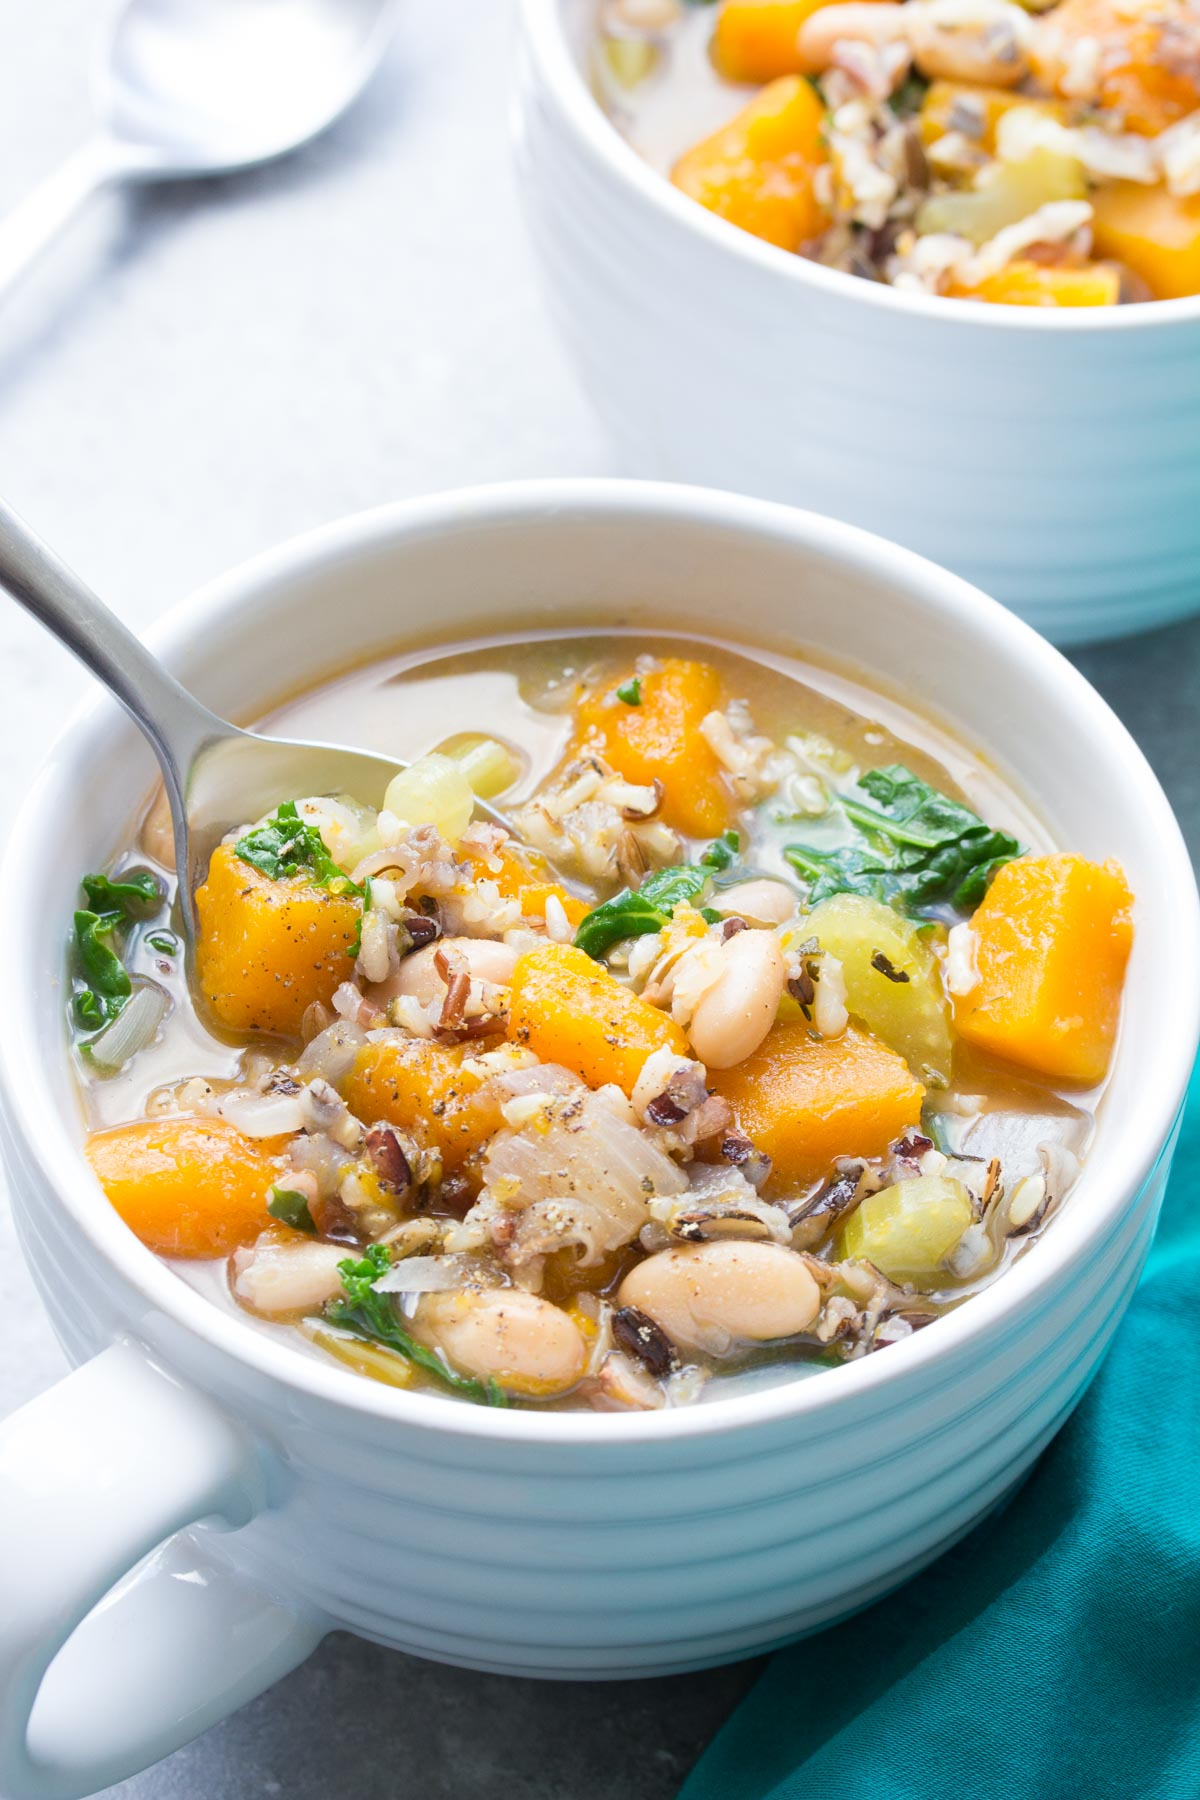 20+ of the Best Gluten Free Soup Recipes perfect for the fall and winter months! You will love how easy this makes meal planning! #mealprep #slowcooker